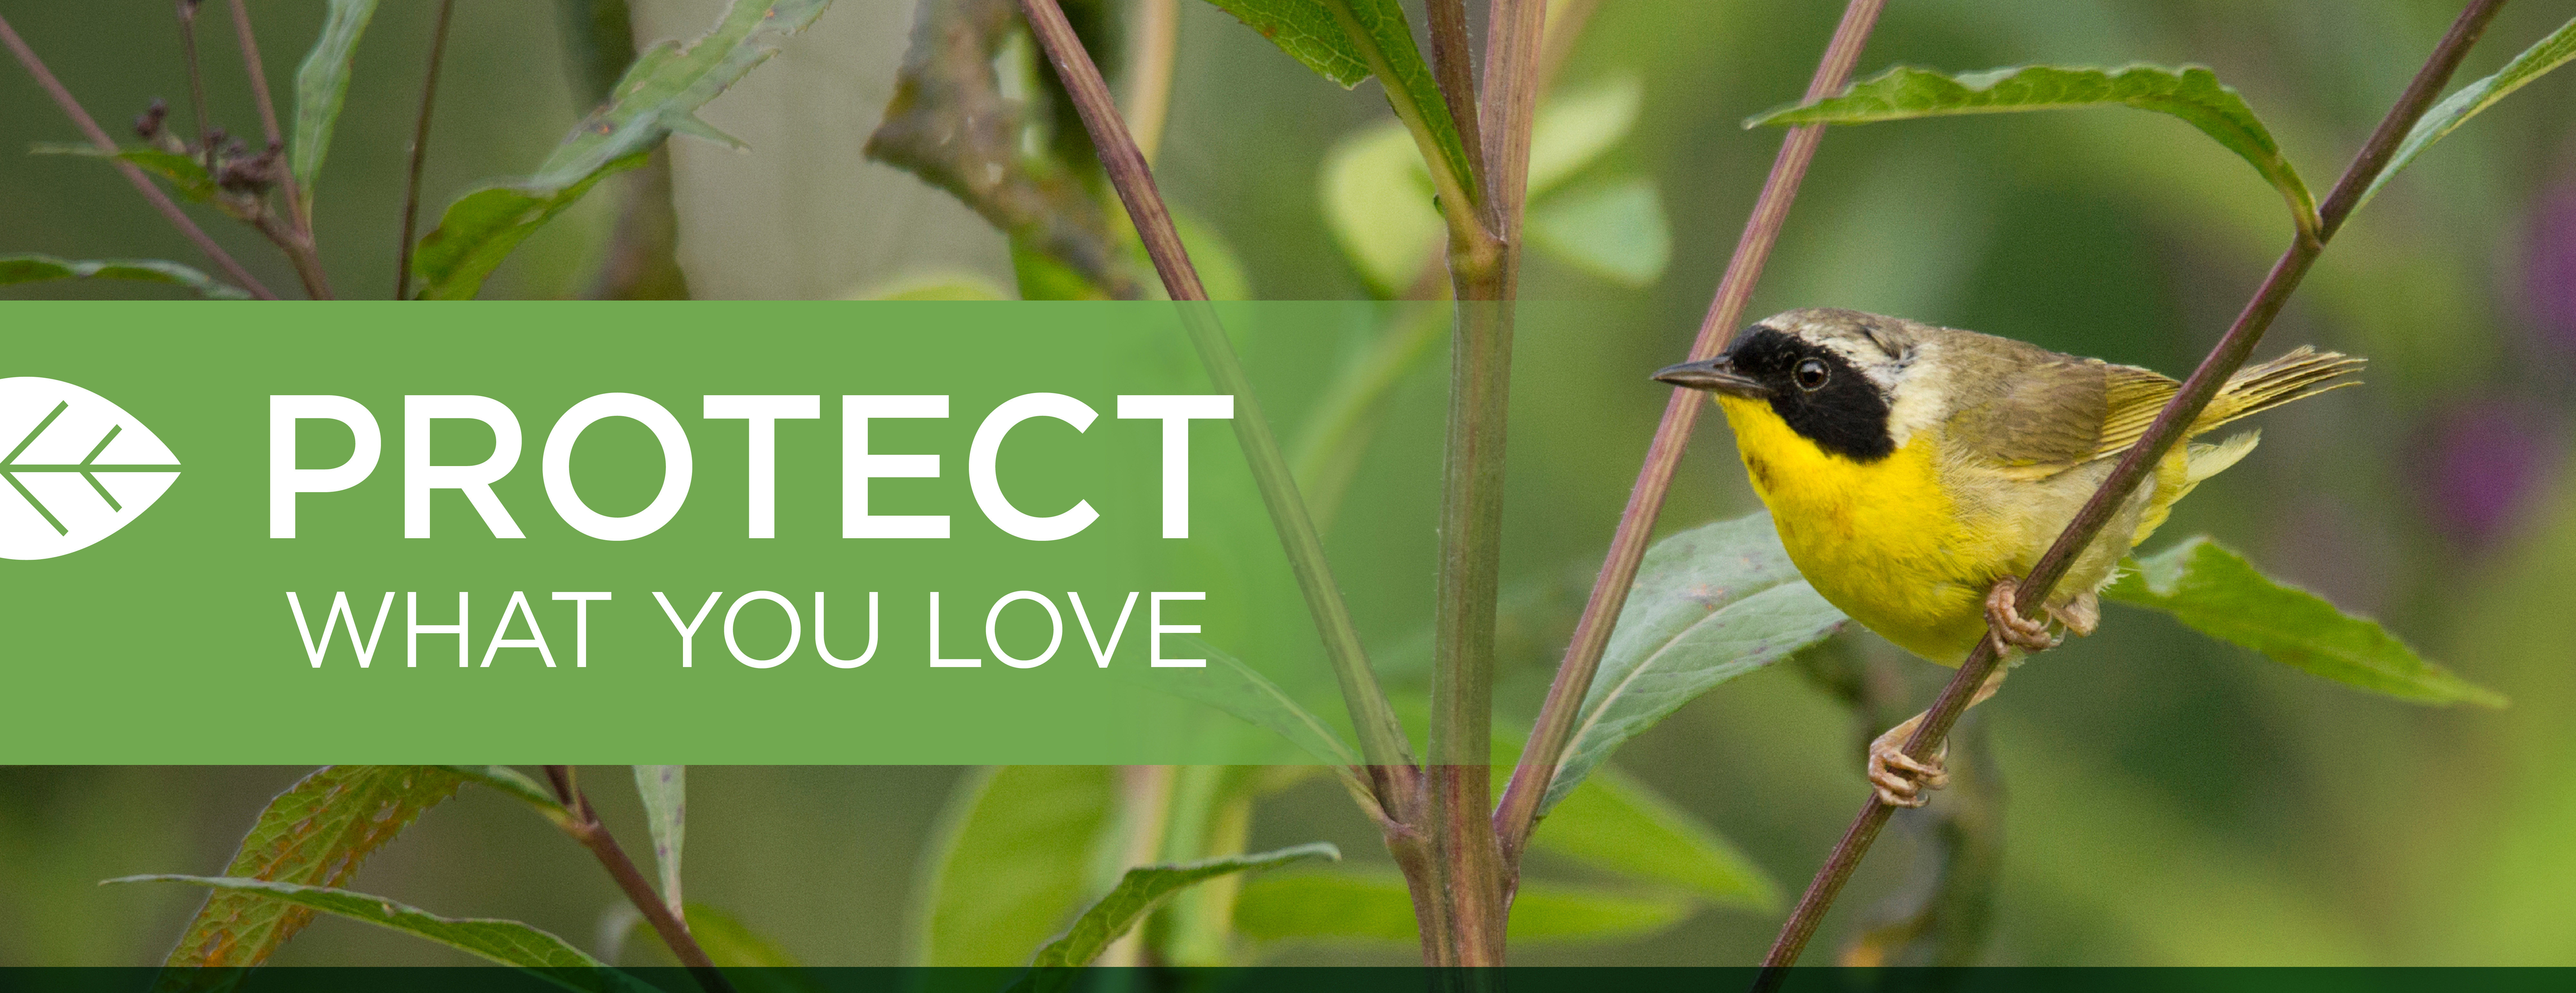 Protect What You Love logo graphic with common yellowthroat behind on tree limb